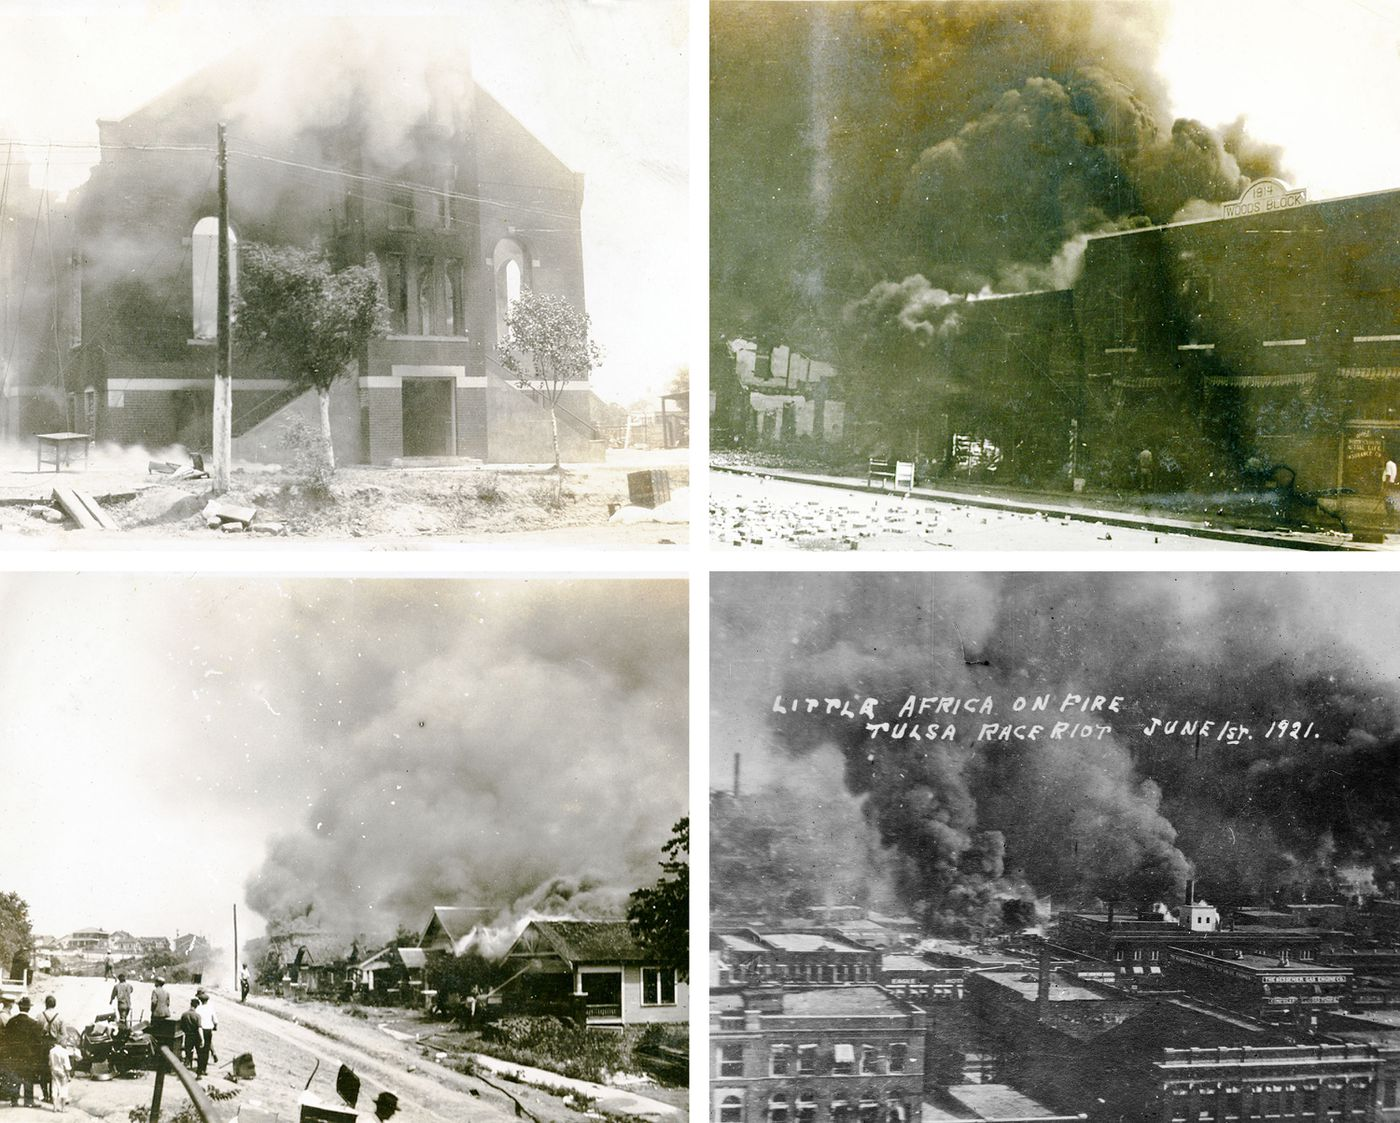 Tulsa's Black Wall Street Burned and Then Rose From the Ashes - The